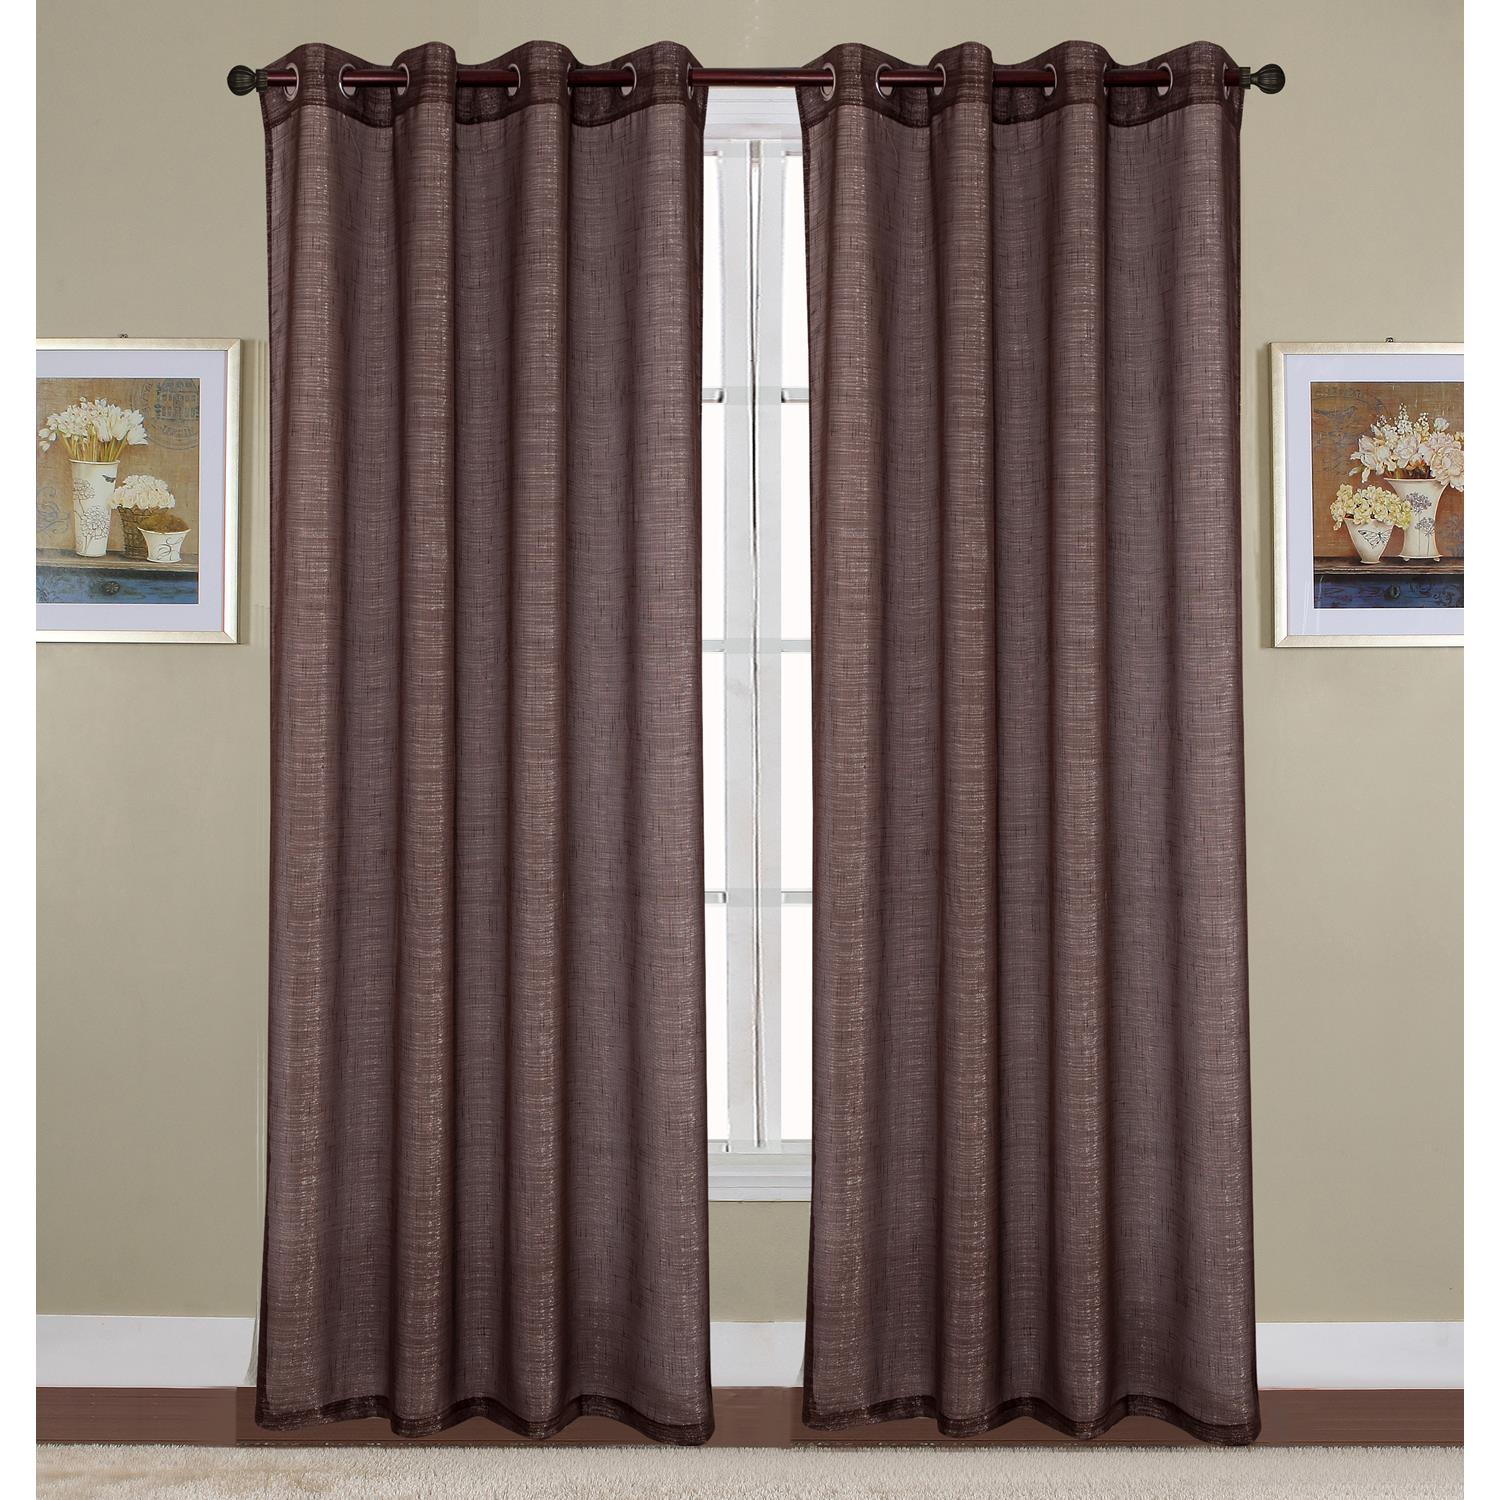 Sparkle Woven 54 x 90 in. Lurex Grommet Single Curtain Panel, White by Ramallah Trading Company, Inc.